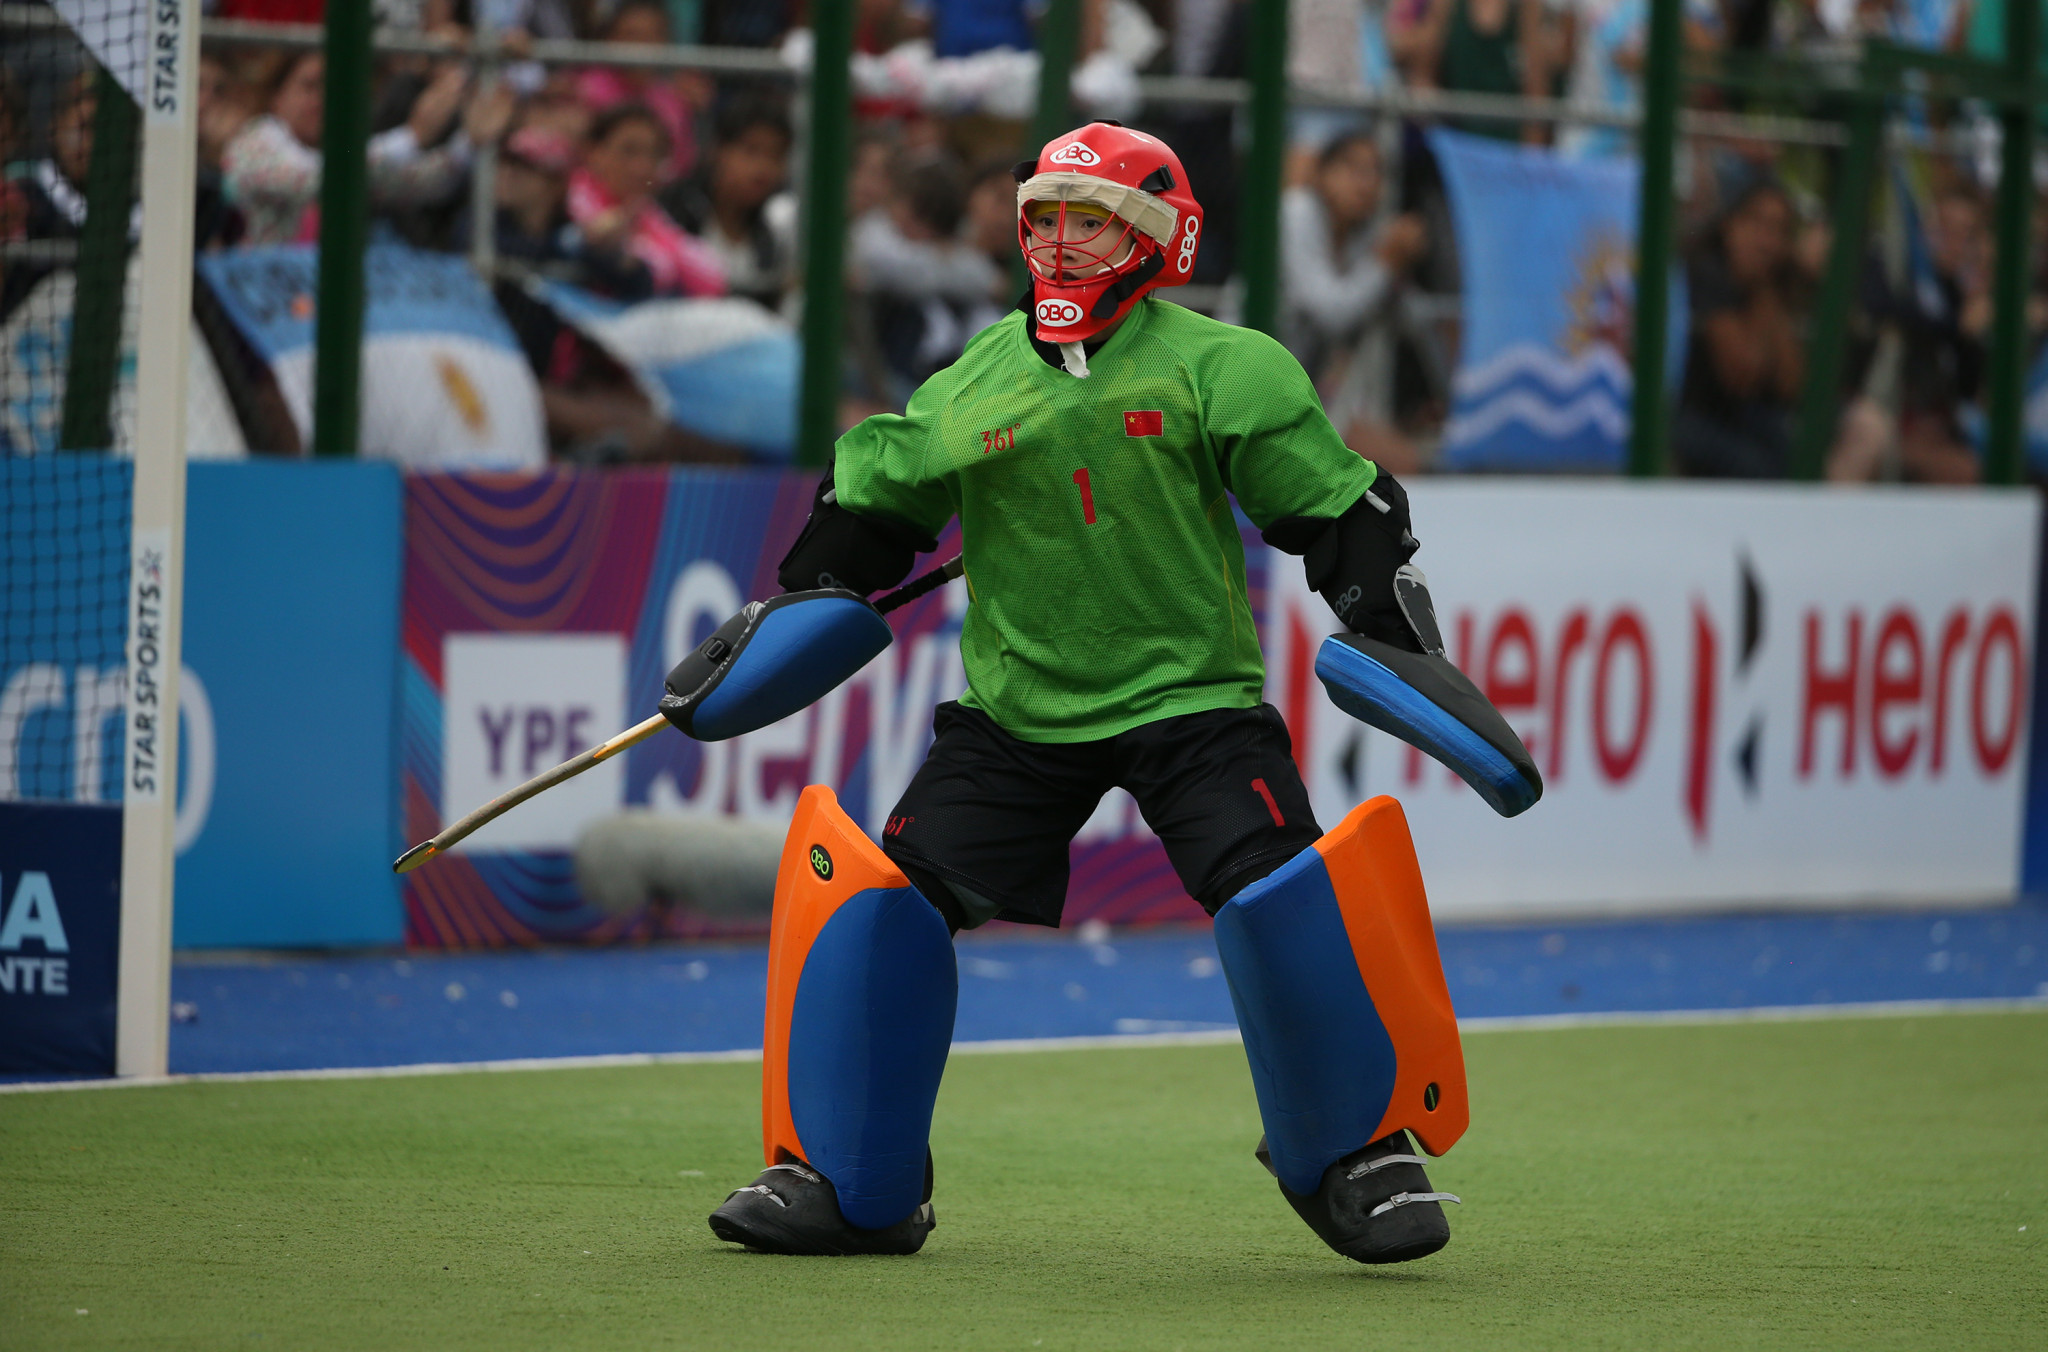 Chinese hockey player banned for one-year after positive drugs test